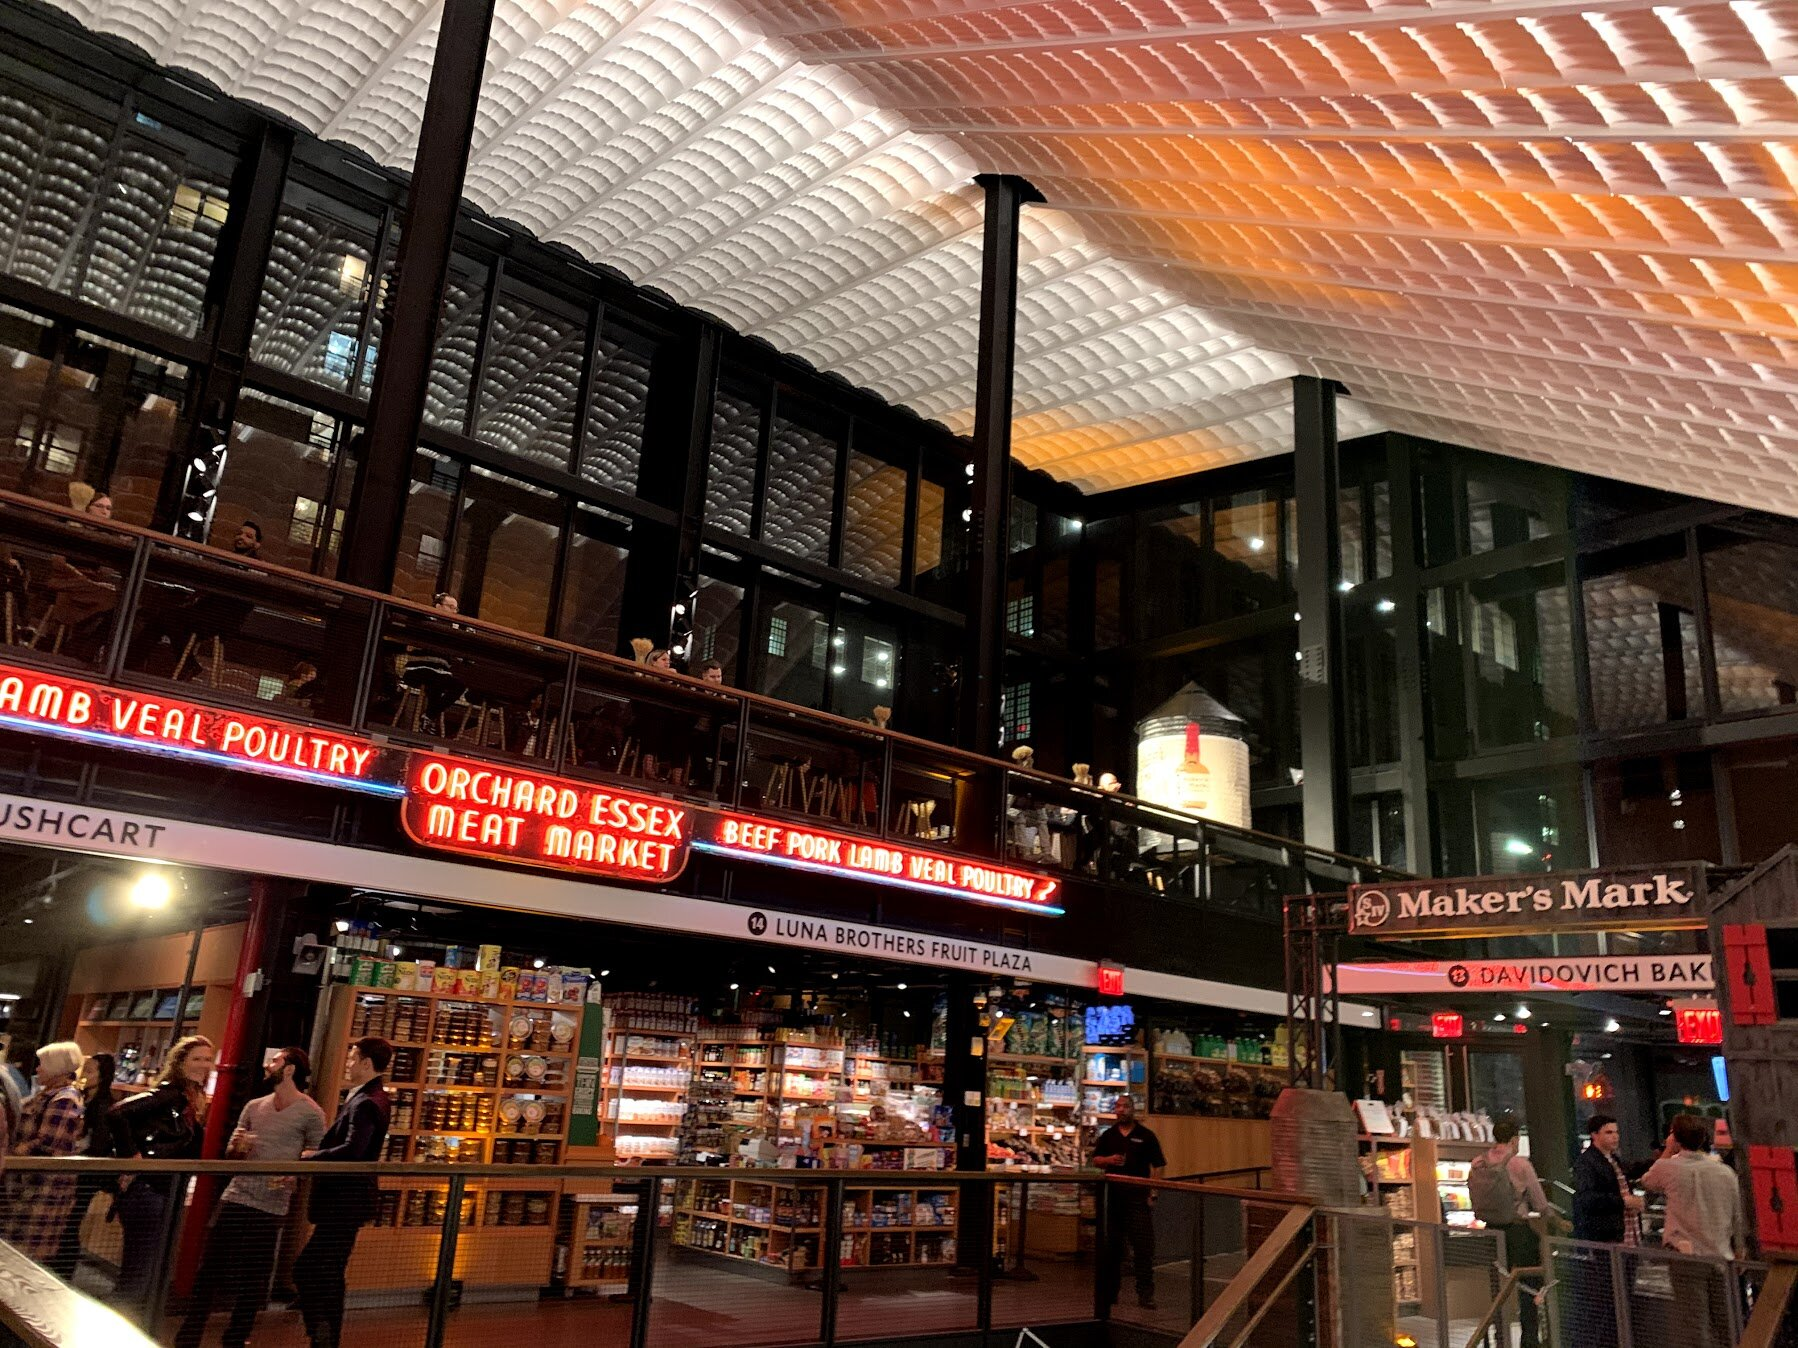 Maker's Mark(et) was held at the new Essex Market, which is located in the Lower East